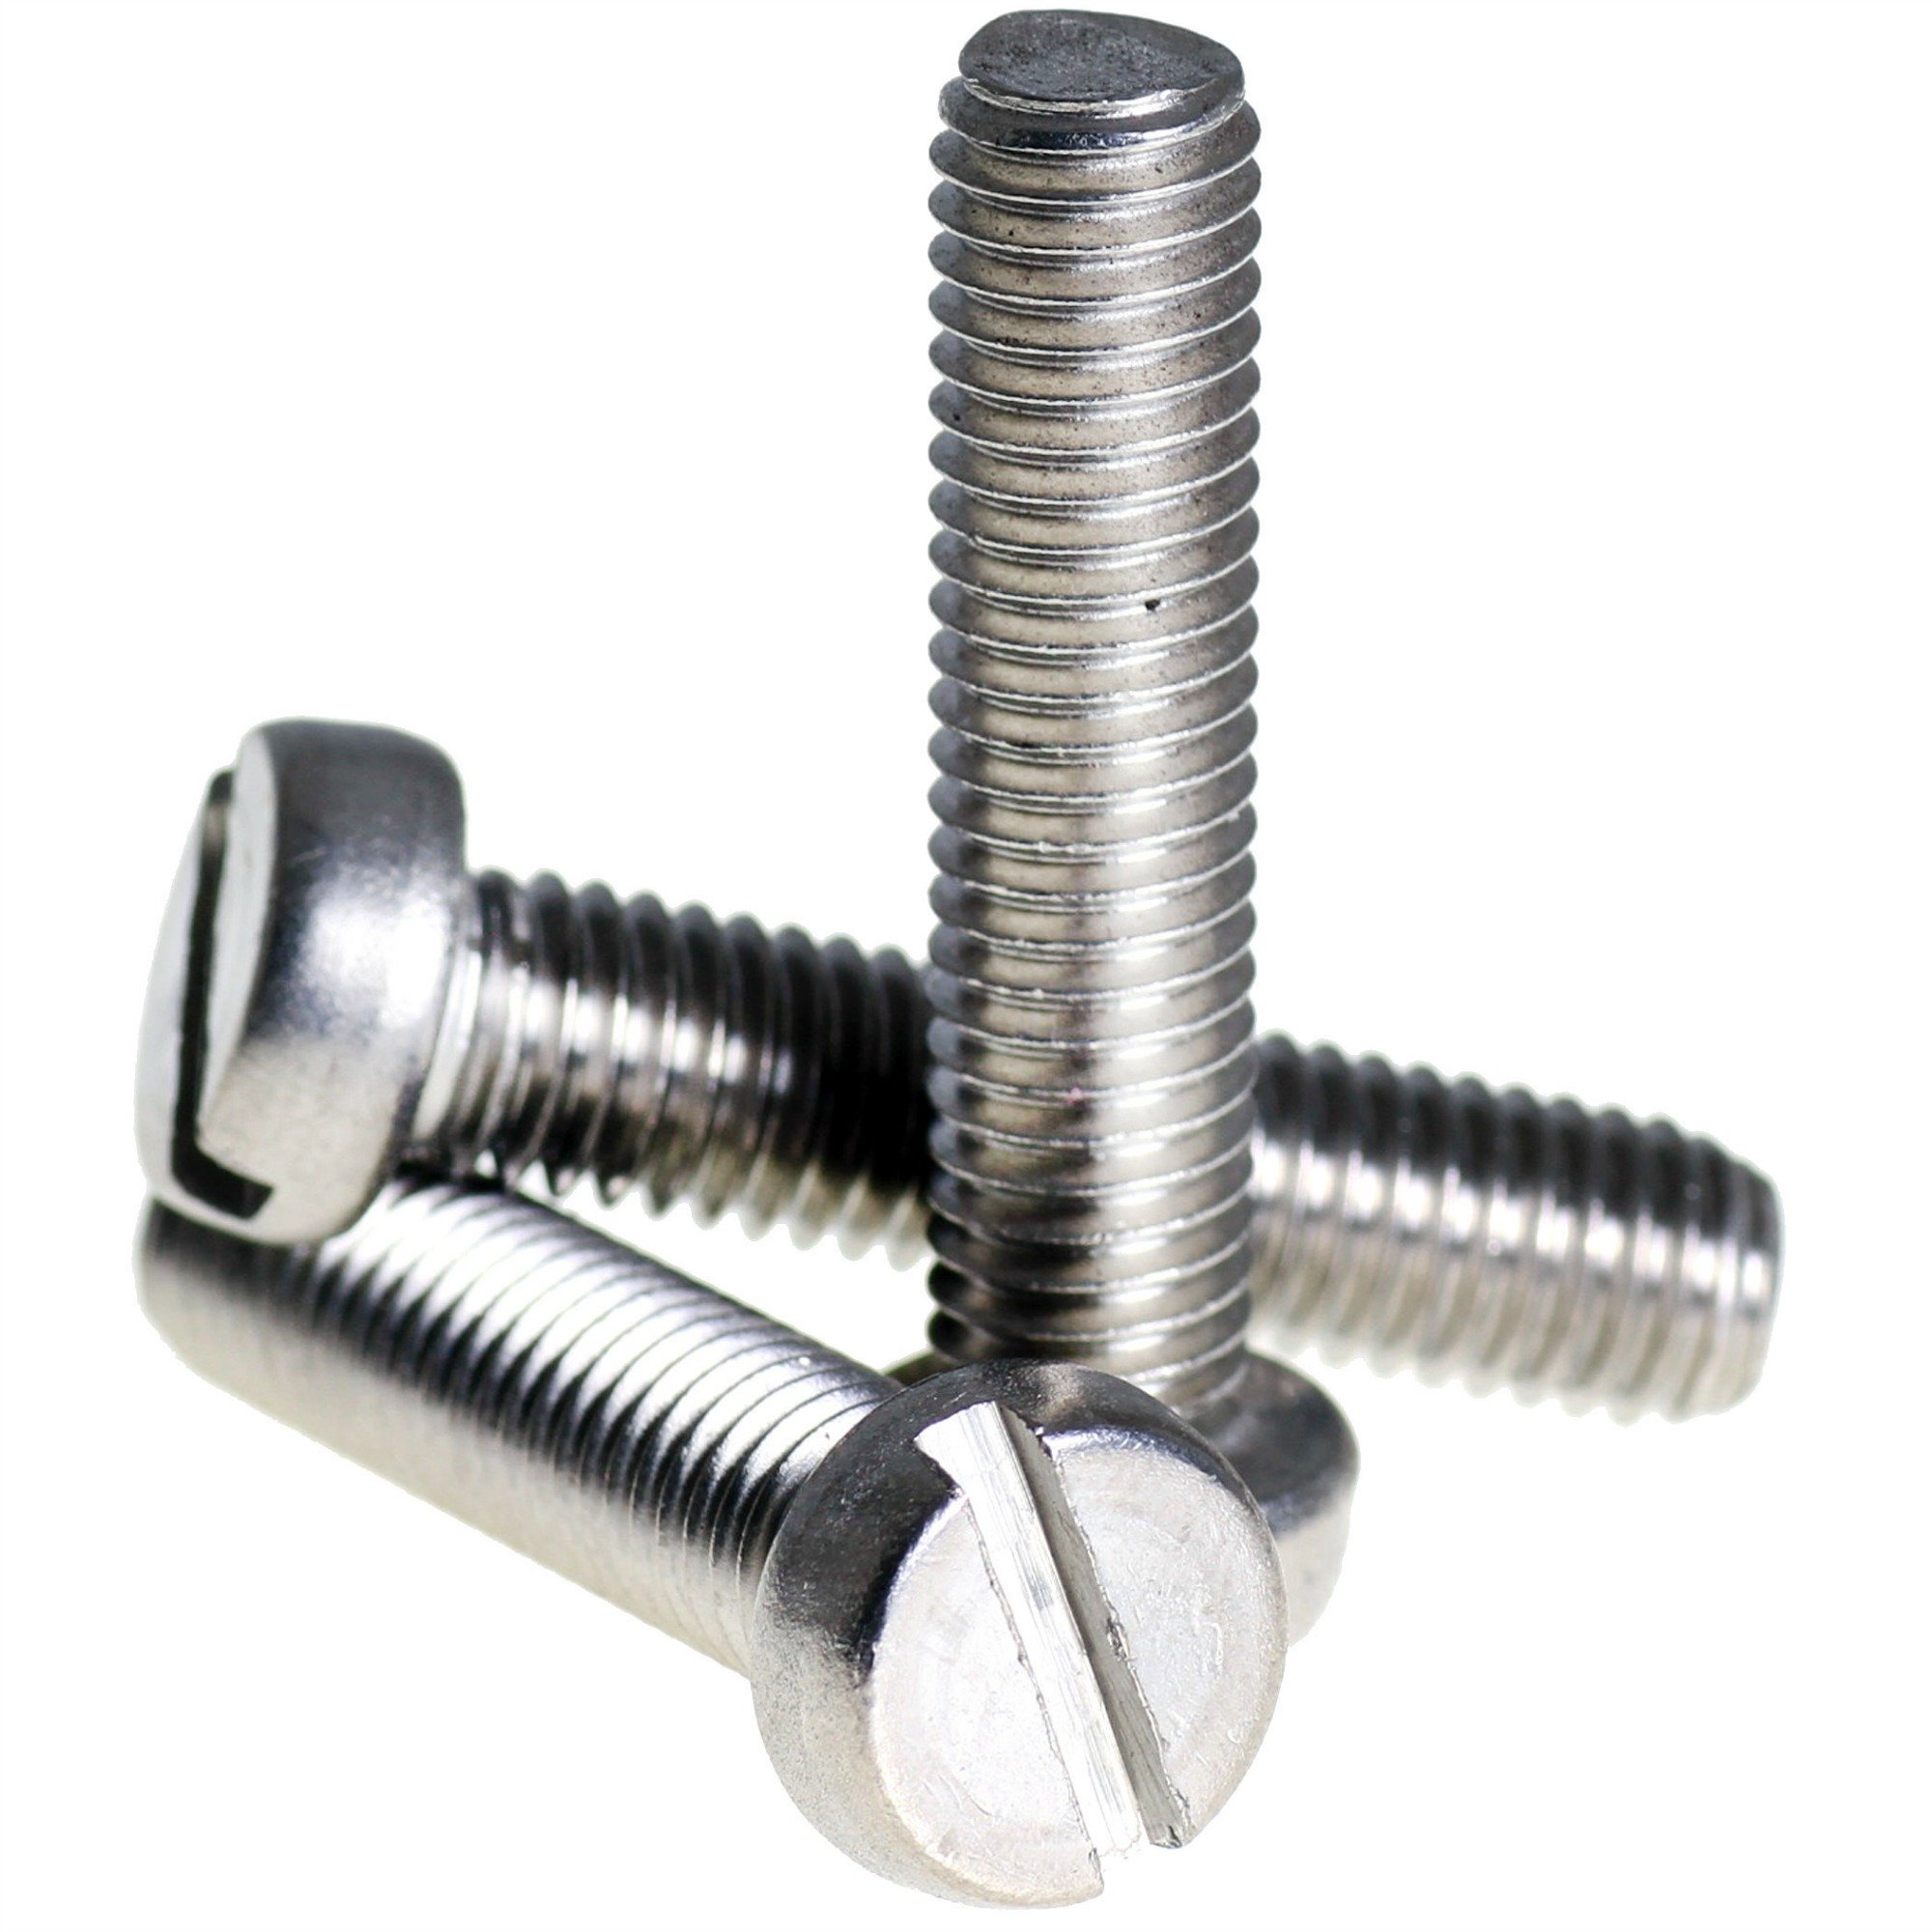 EasyMech M5 x 8mm CHHD Bolt, Nut and Washer Set